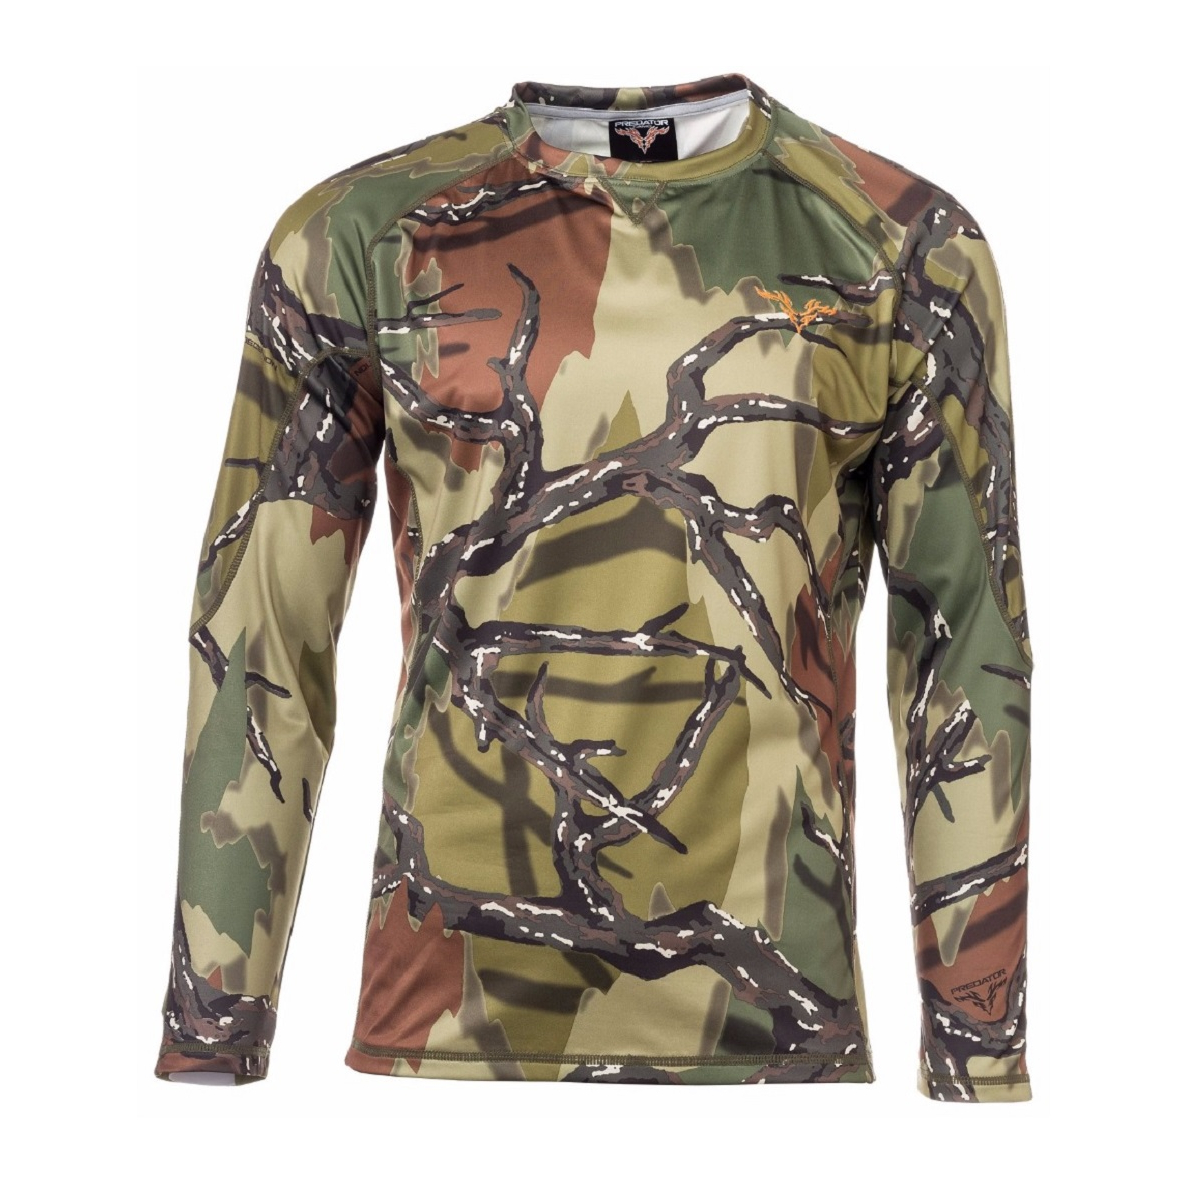 Predator Camo Performance Long Sleeve Crew Top